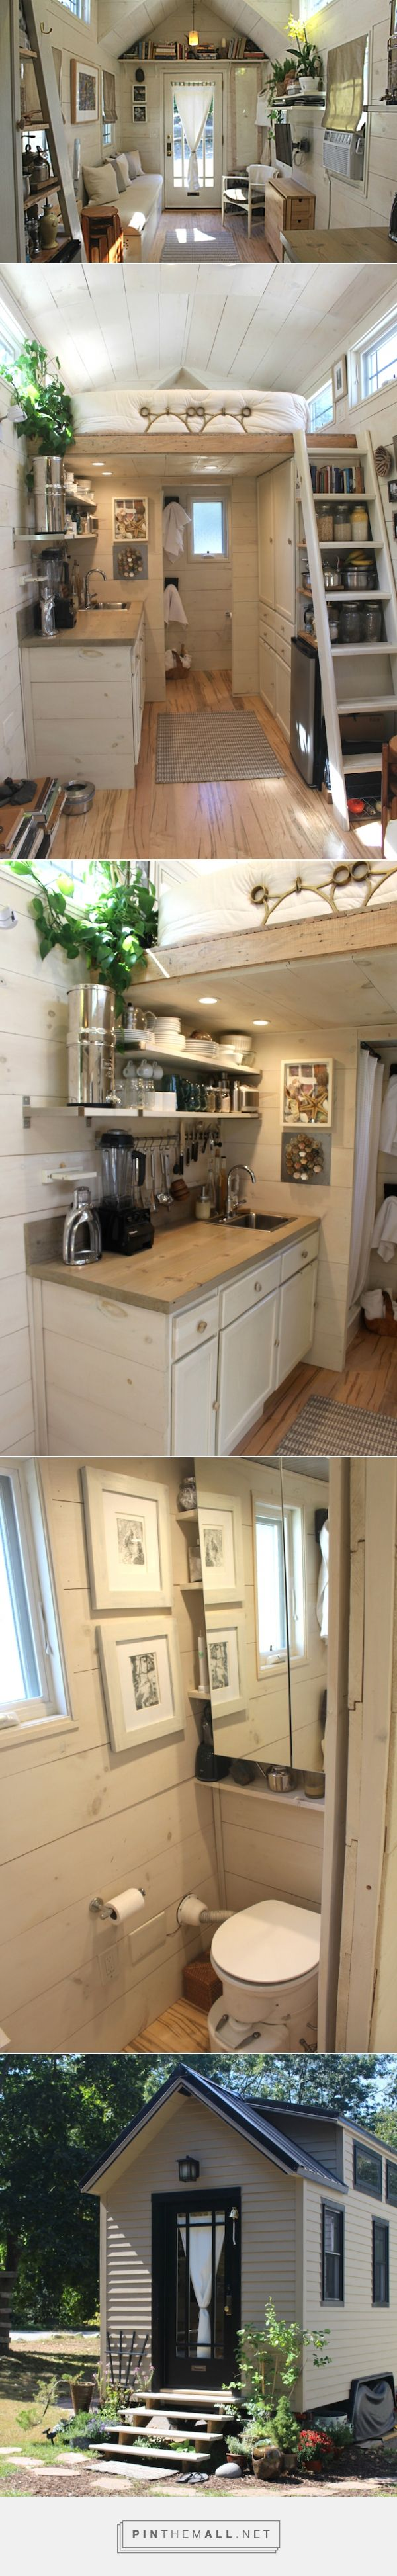 Best 25 tiny house family ideas only on pinterest tiny guest house mini homes and inside tiny houses